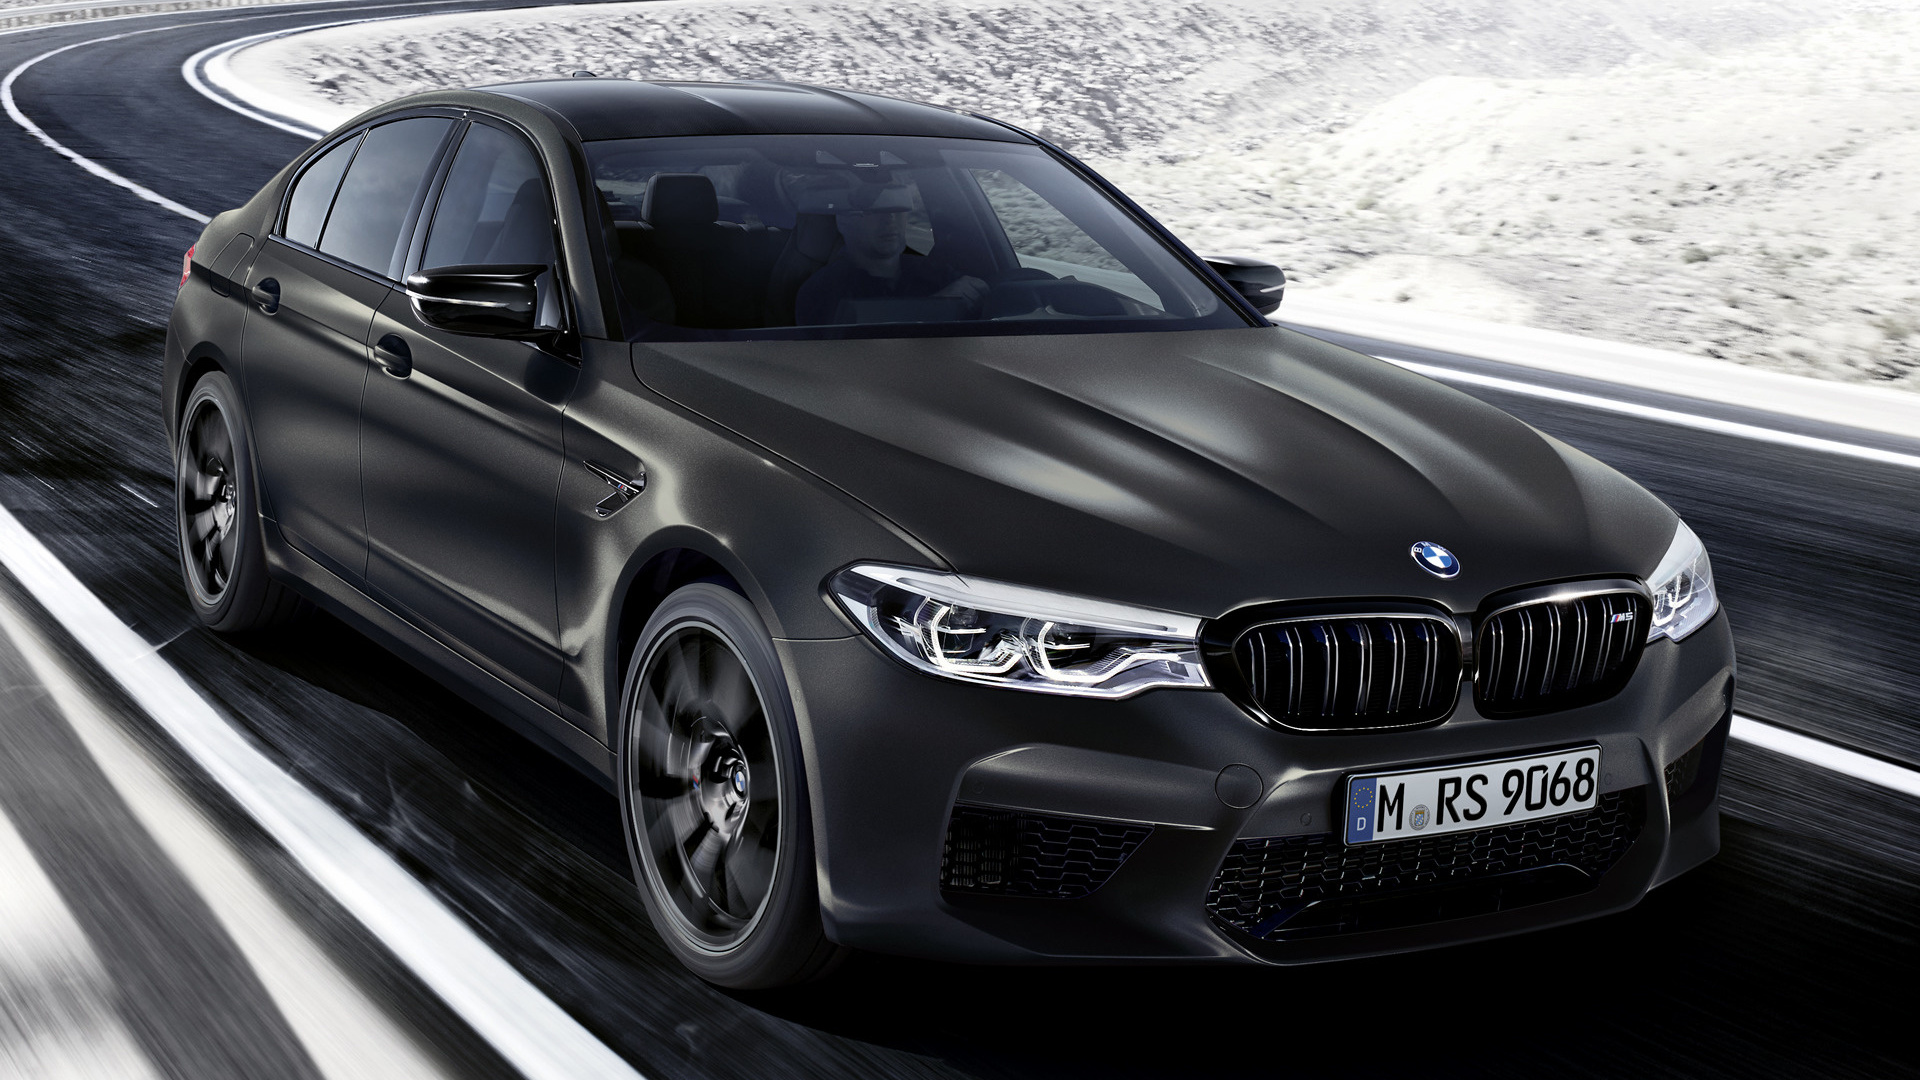 2019 BMW M5 Competition 35 Years Edition - Wallpapers and ...